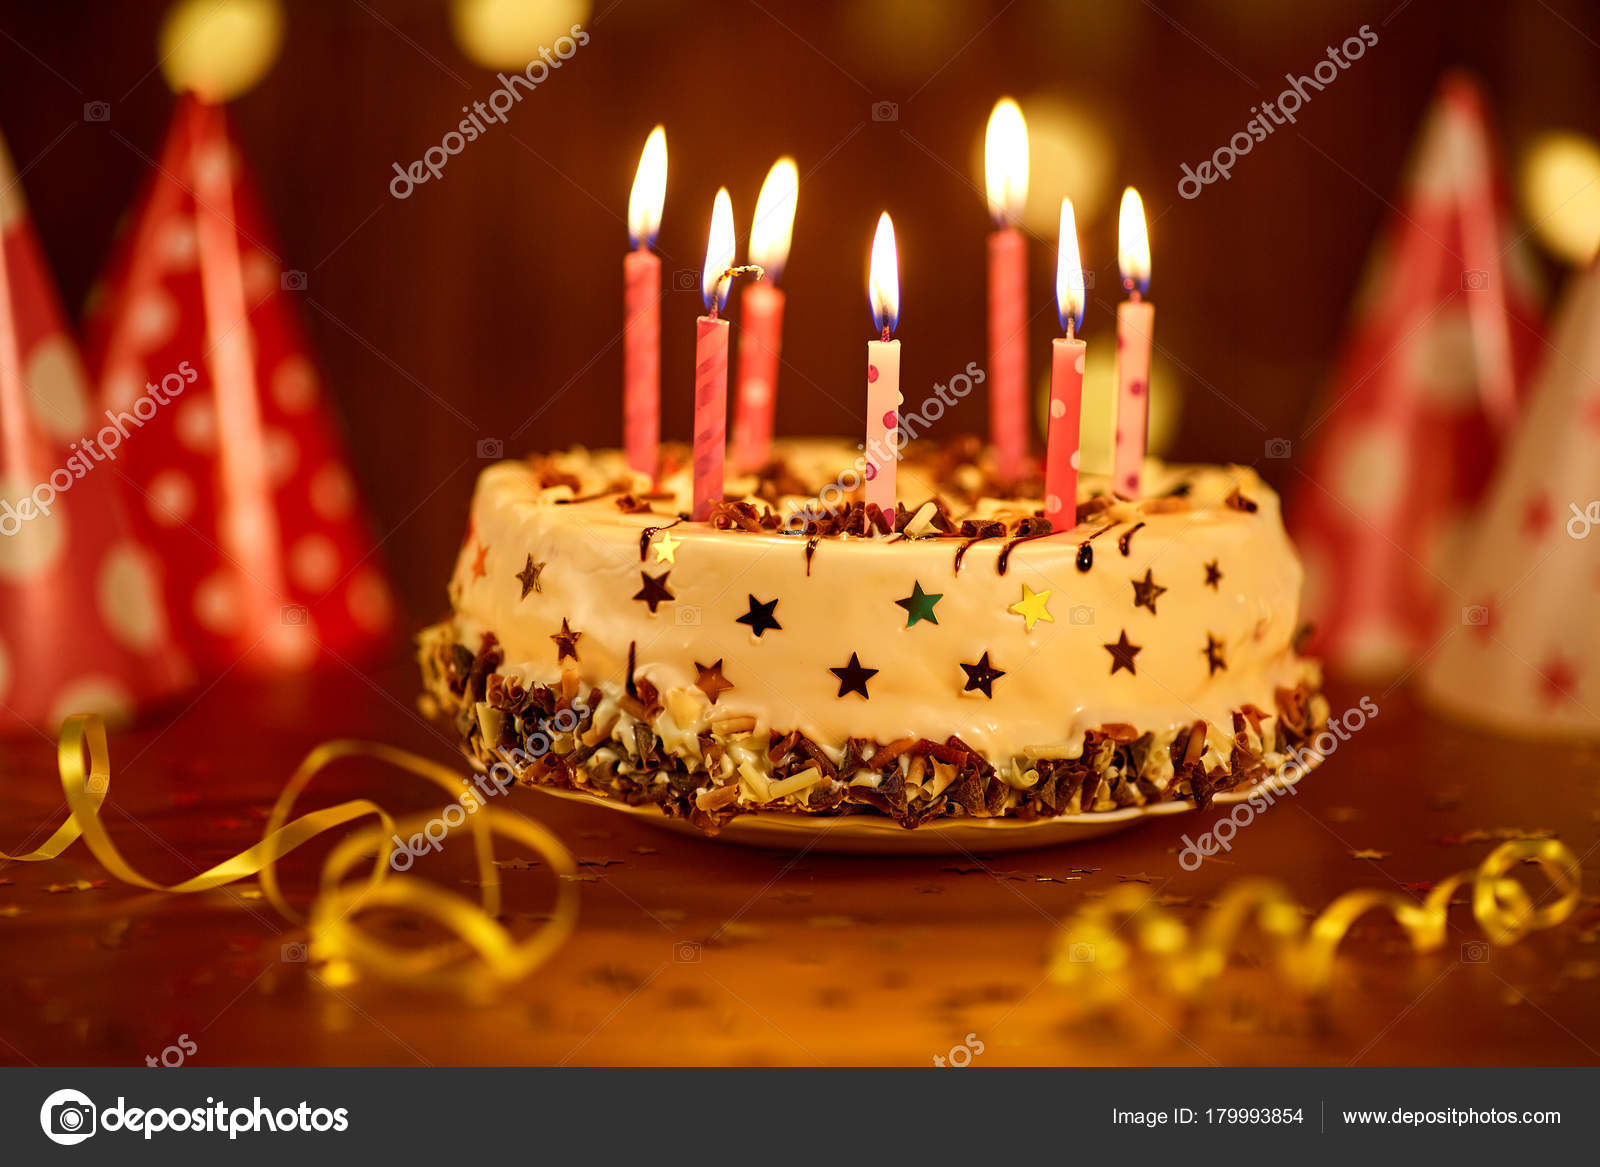 Happy Birthday Cake Pics Download Brithday Cake